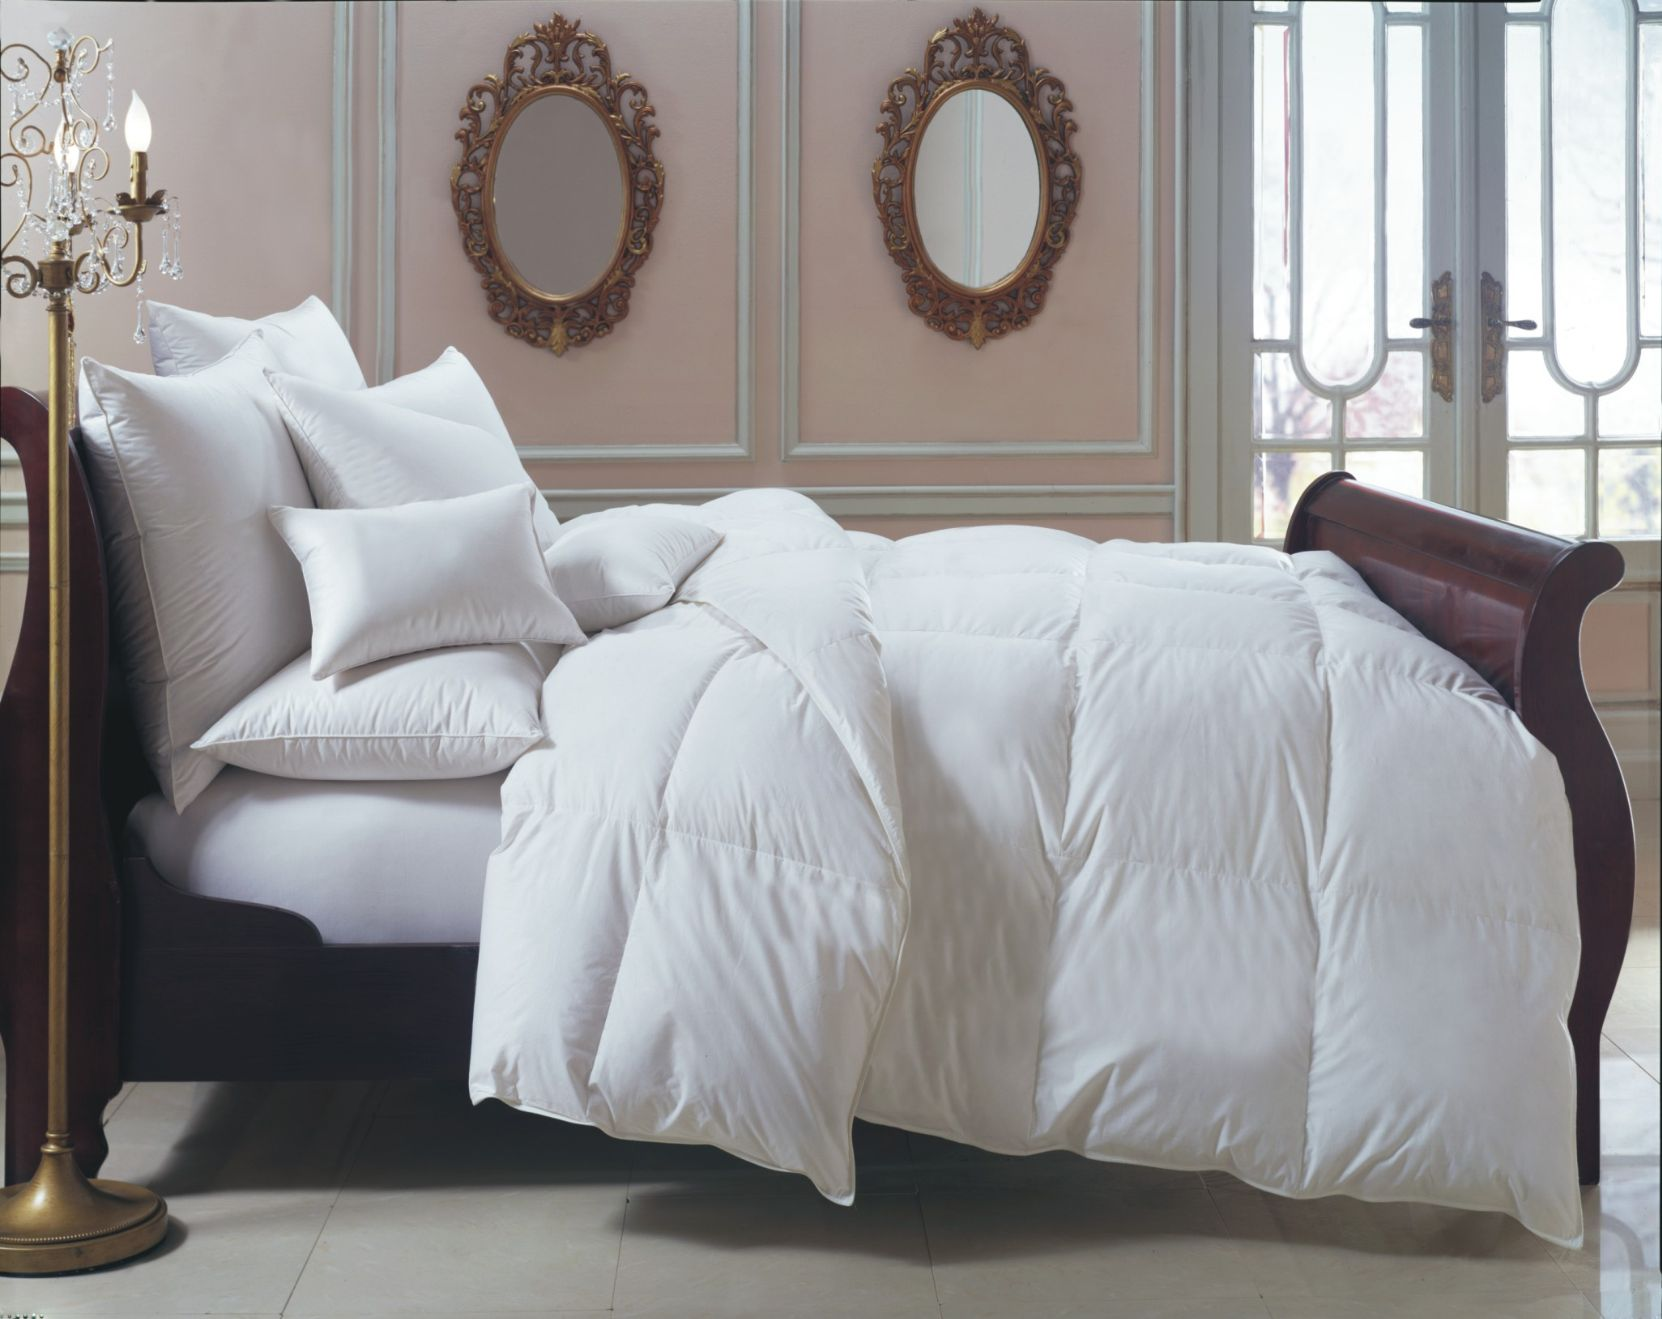 Down Comforter Review Parfums De Nicolai Sacrebleu